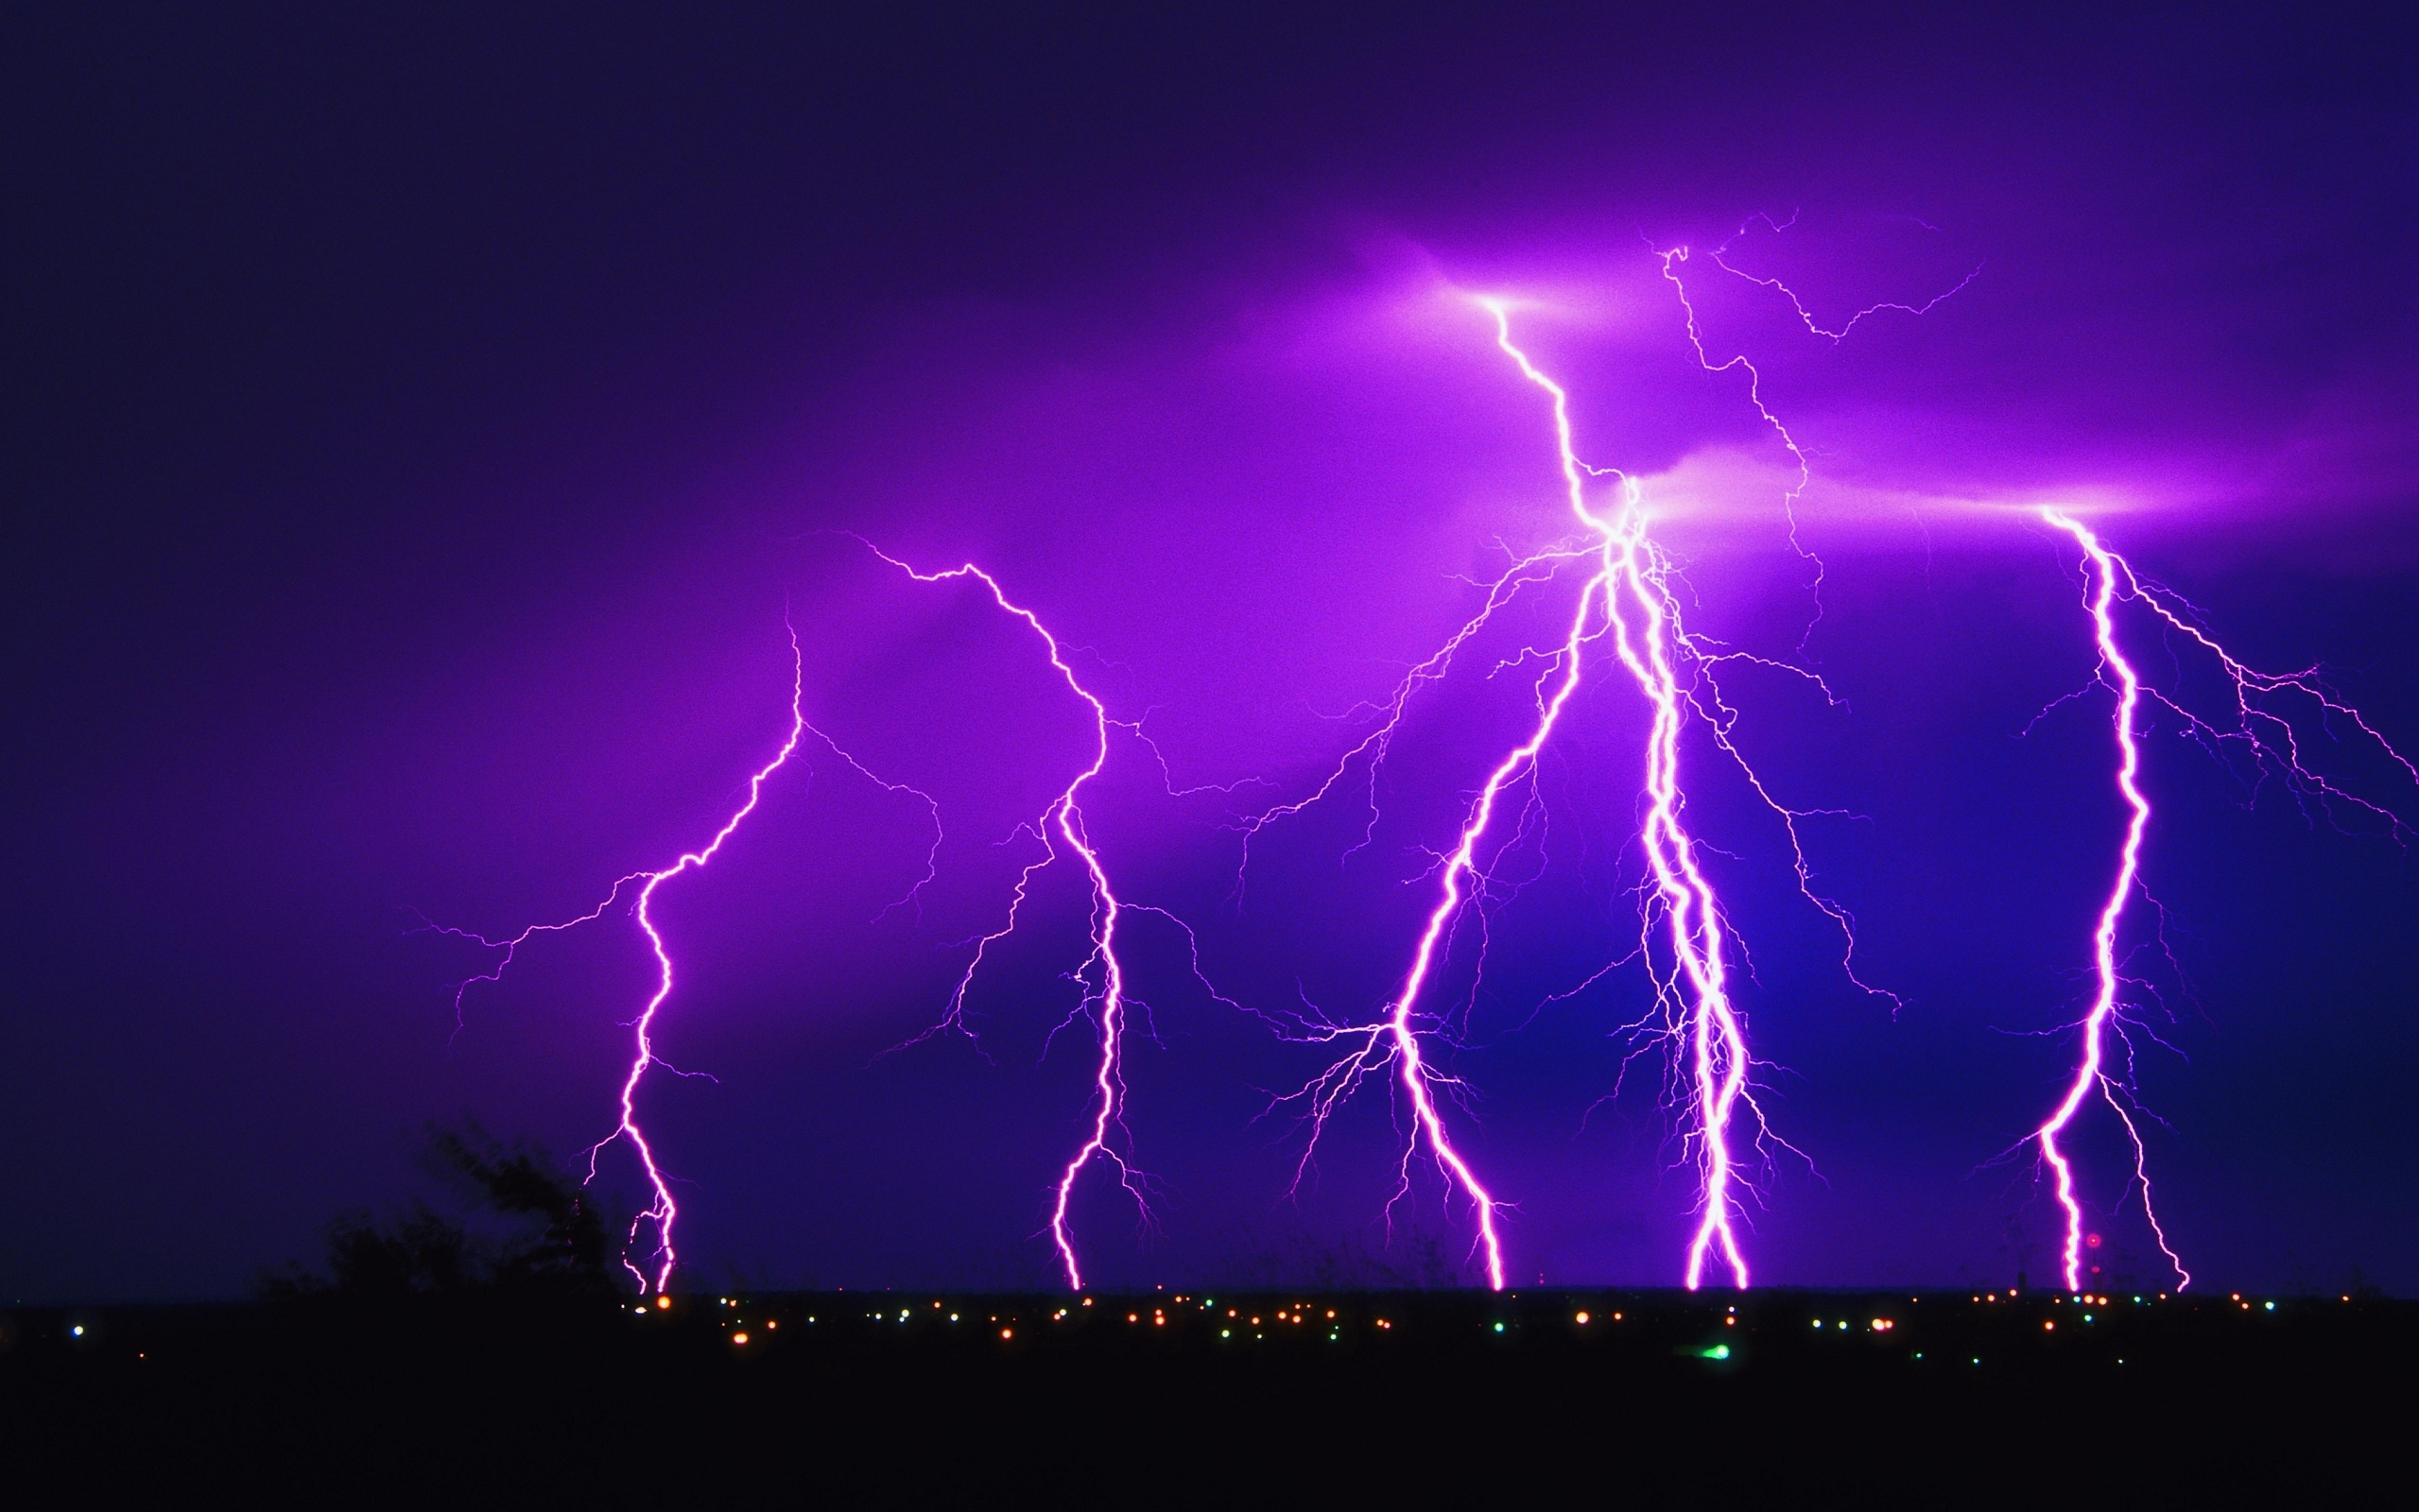 lightning strike hd wallpapers With Resolutions 25591600 Pixel 2559x1600